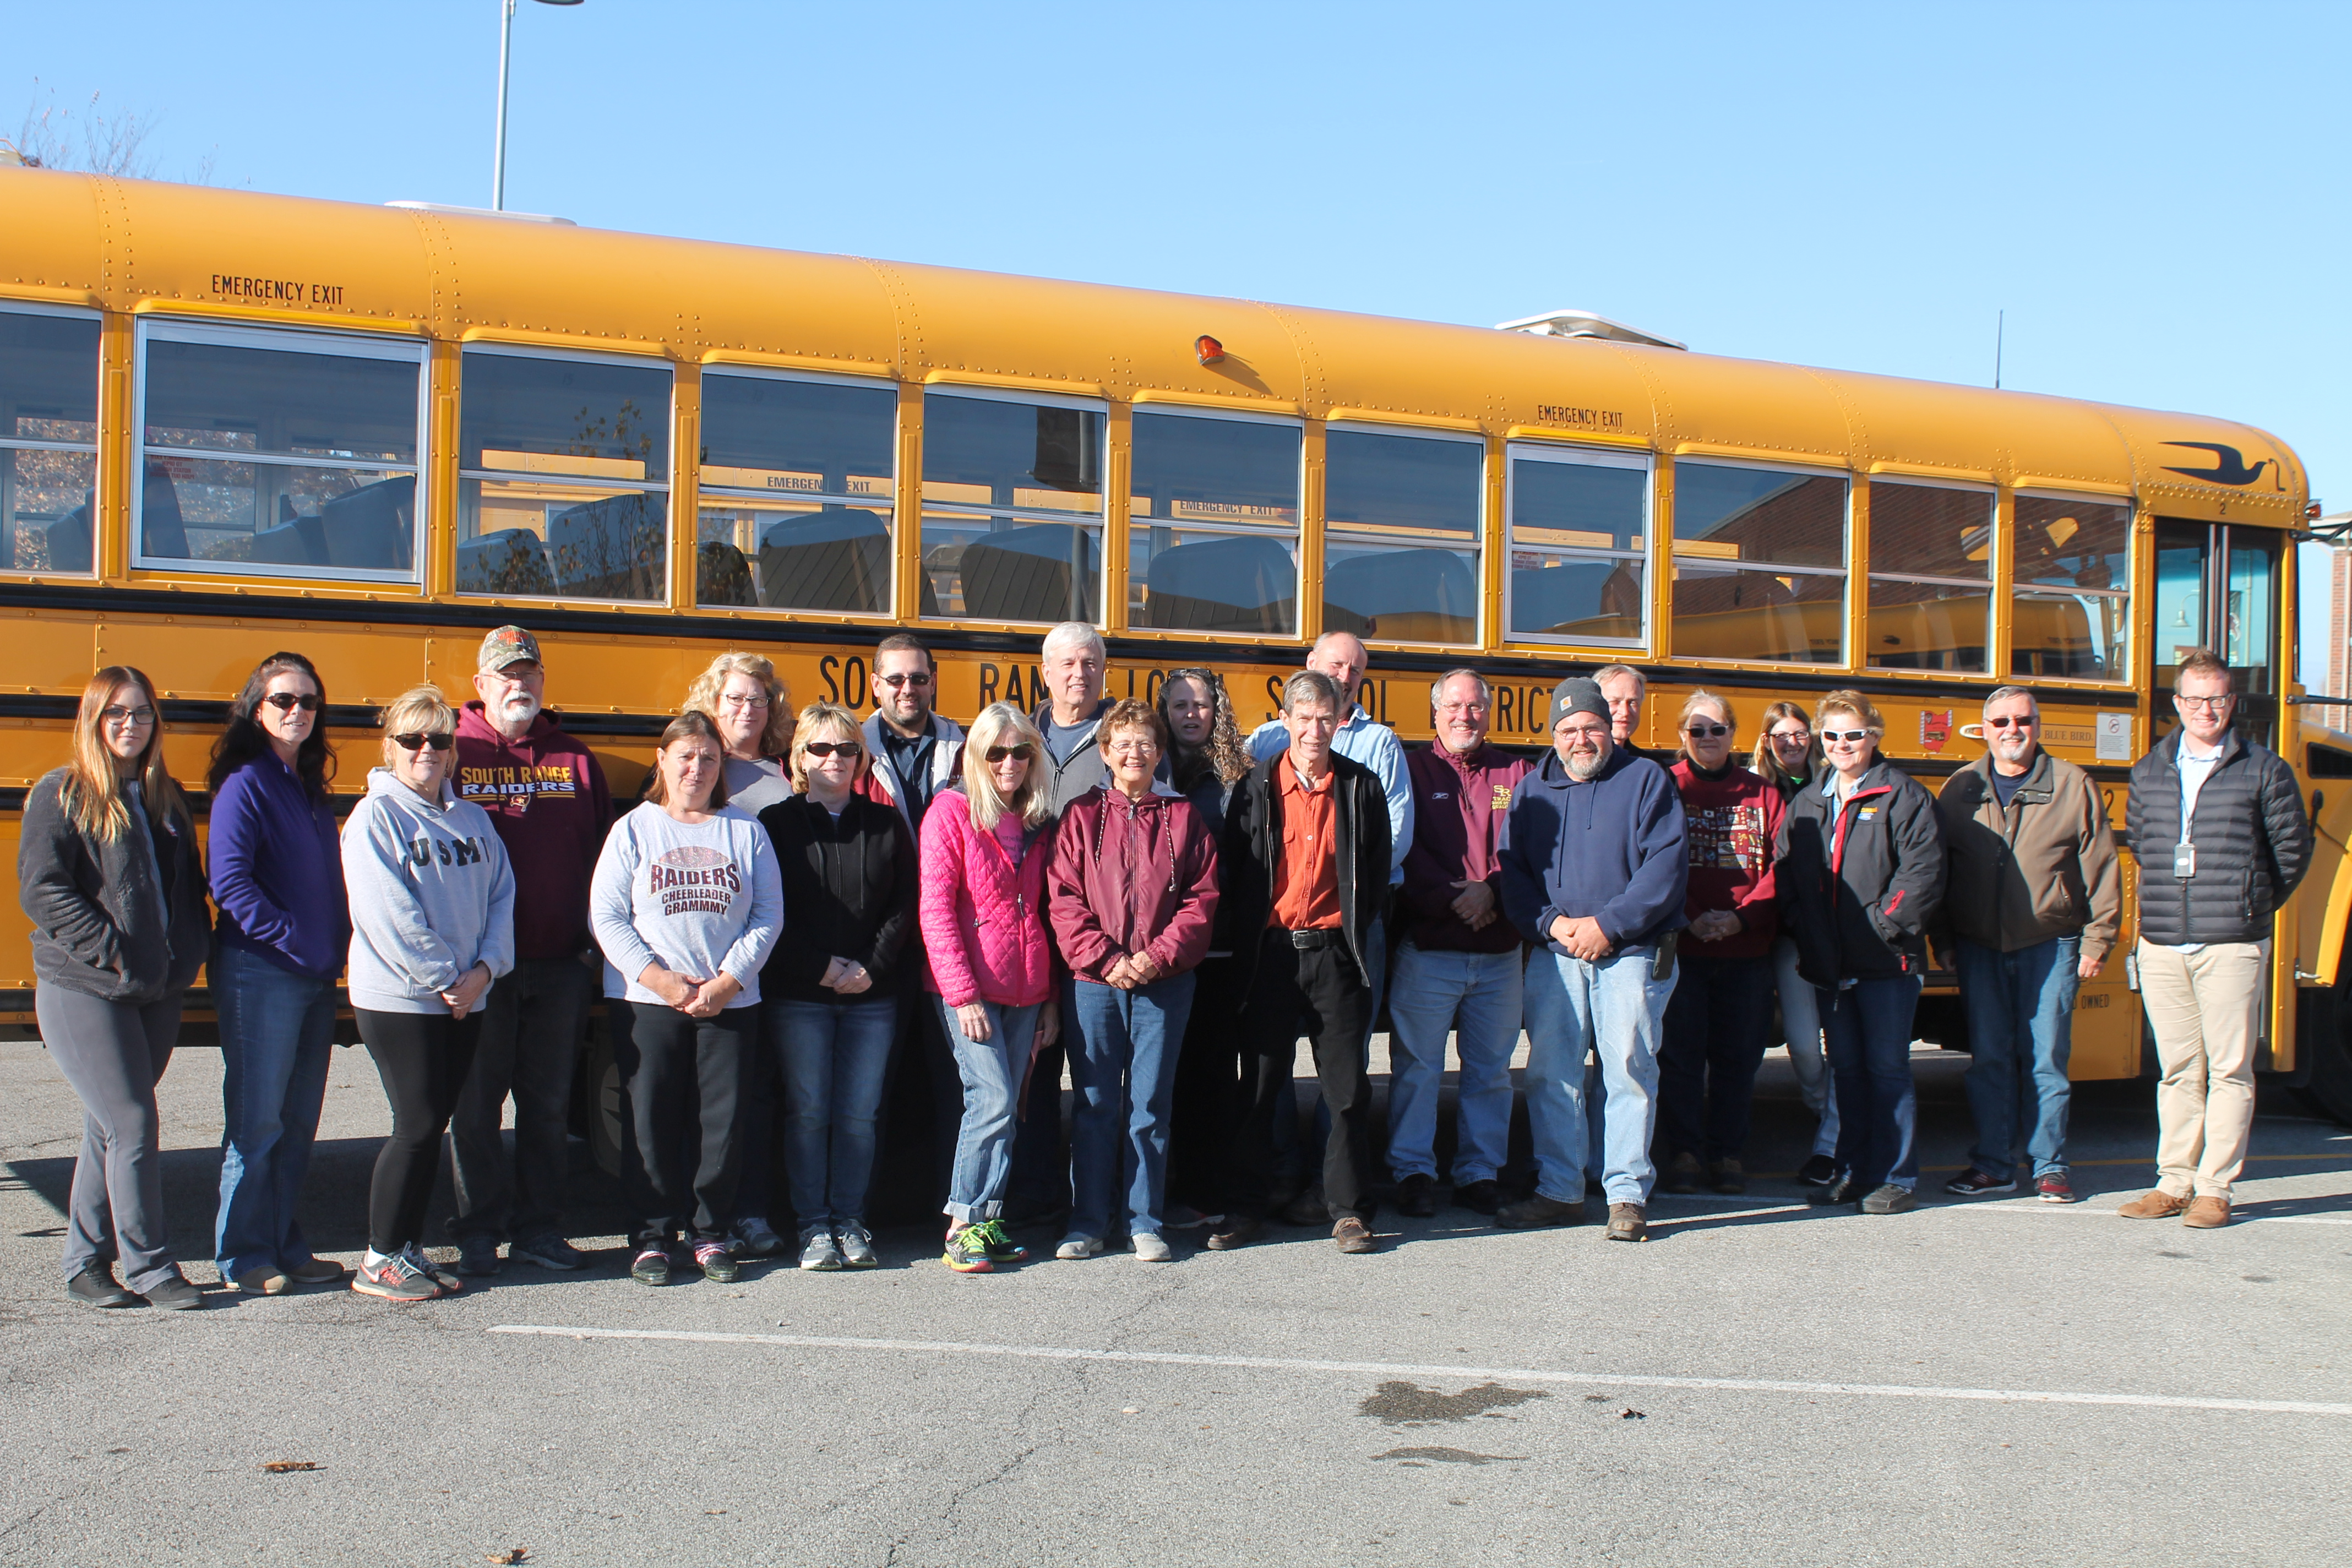 Our wonderful group of transportation professionals here at South Range.